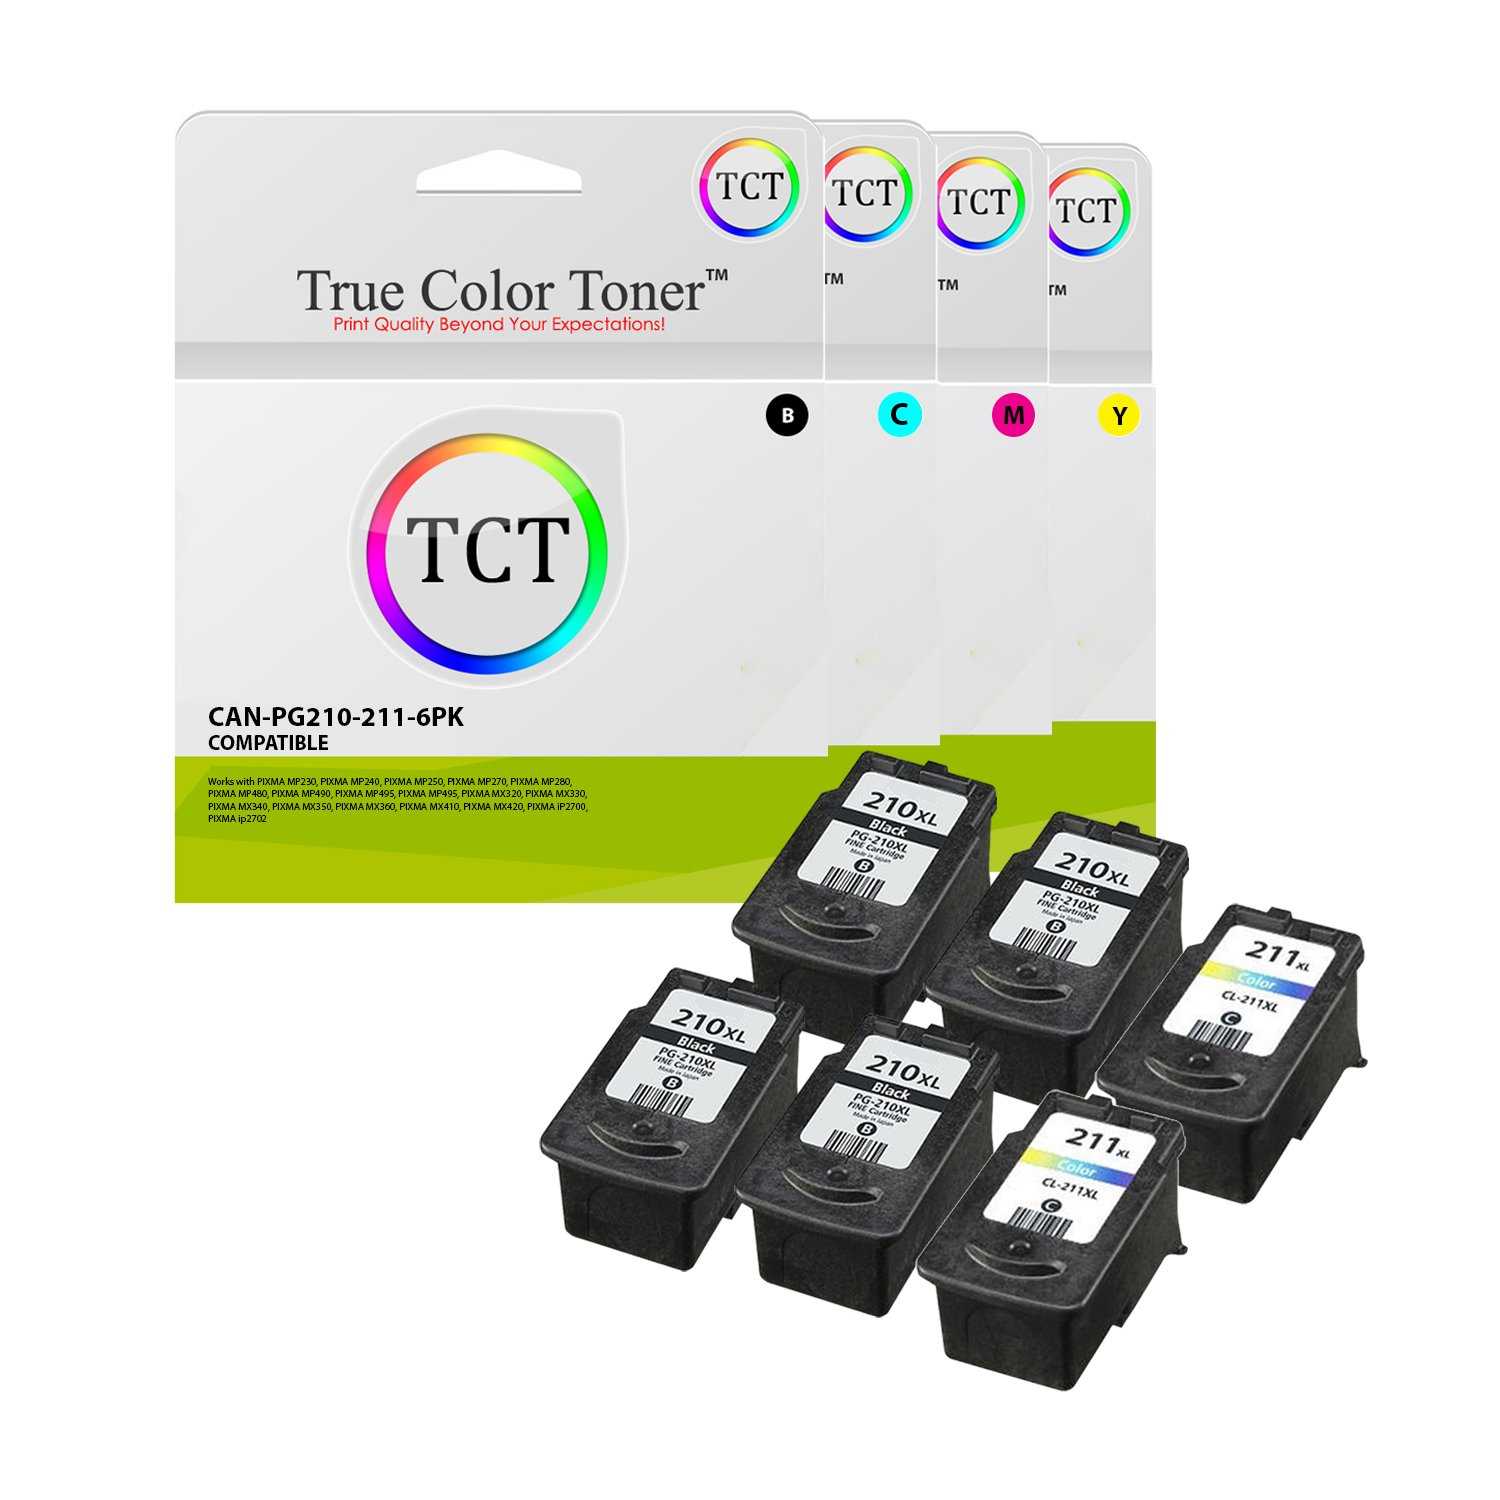 True Color Toner PG-210 CL-211 6 Pack Combo High Yield Compatible Ink Replacement for Canon Pixma MP240 MP250 MP270 MP280 MP480 MP490 MP495 MX320 MX330 MX340 MX410 MX420 iP2700 iP2702 PP-201 Printers